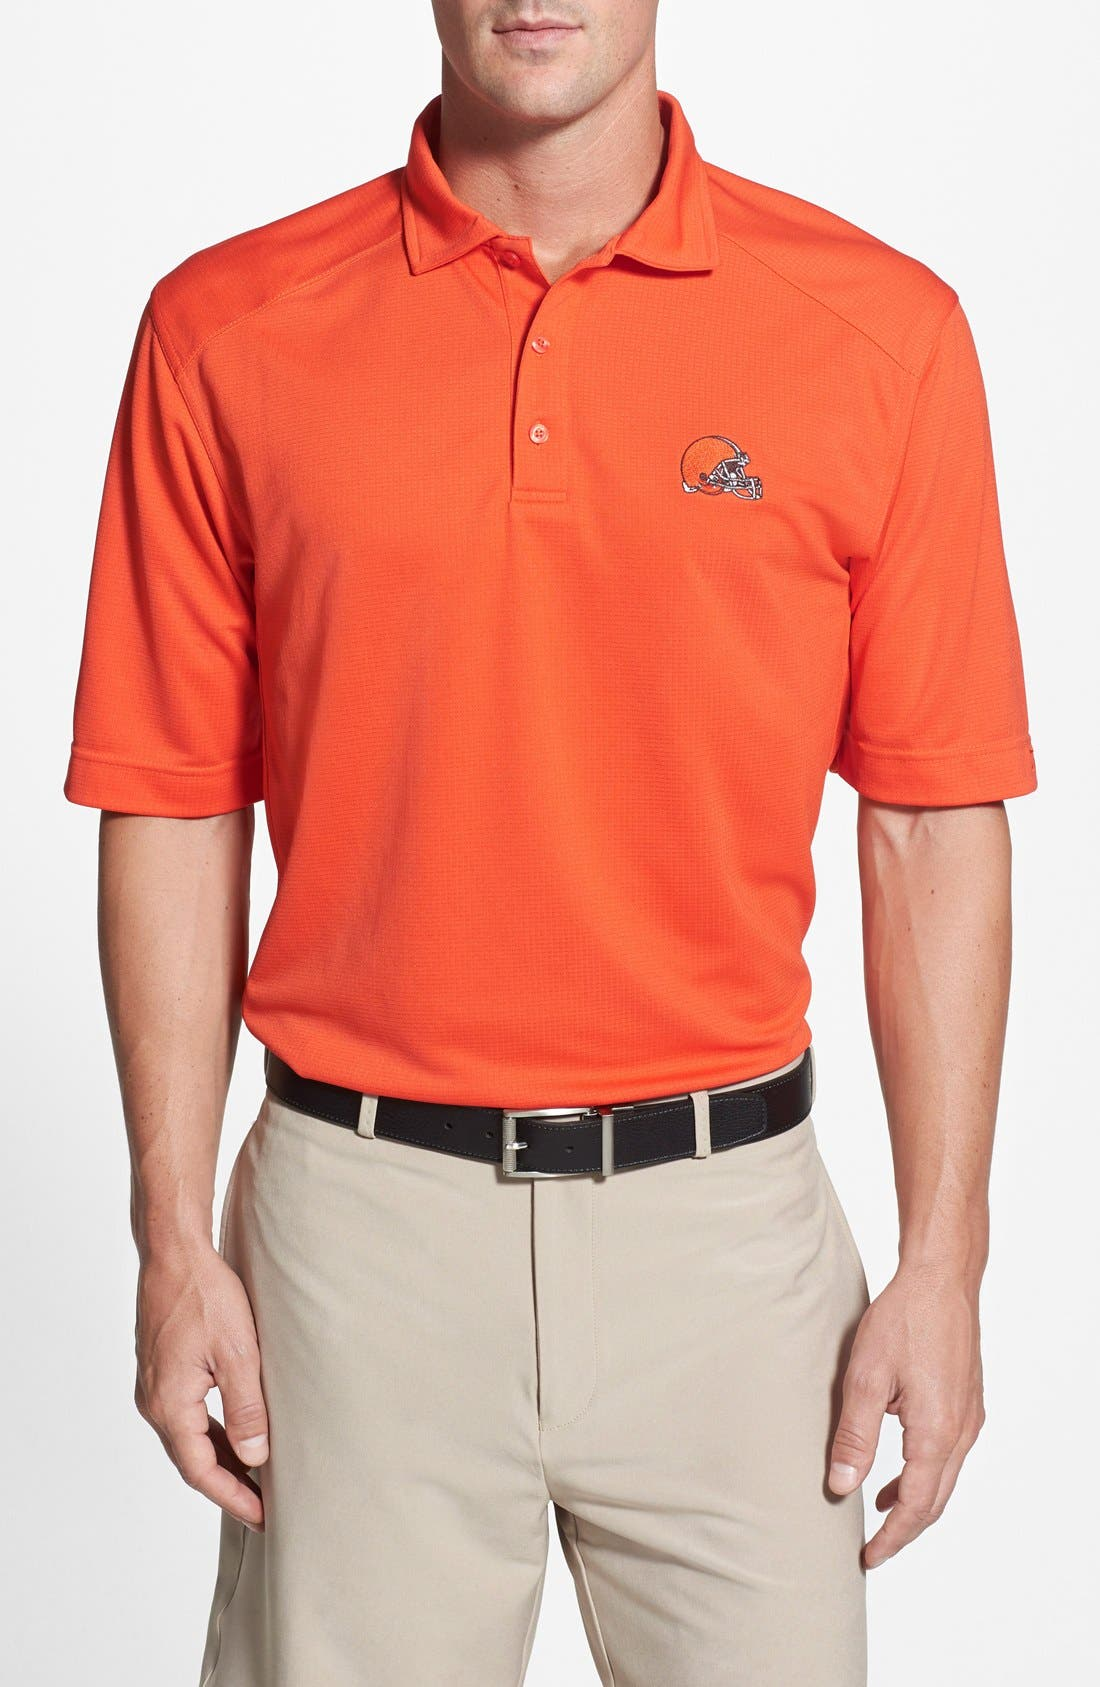 Cleveland Browns - Genre DryTec Moisture Wicking Polo,                             Main thumbnail 1, color,